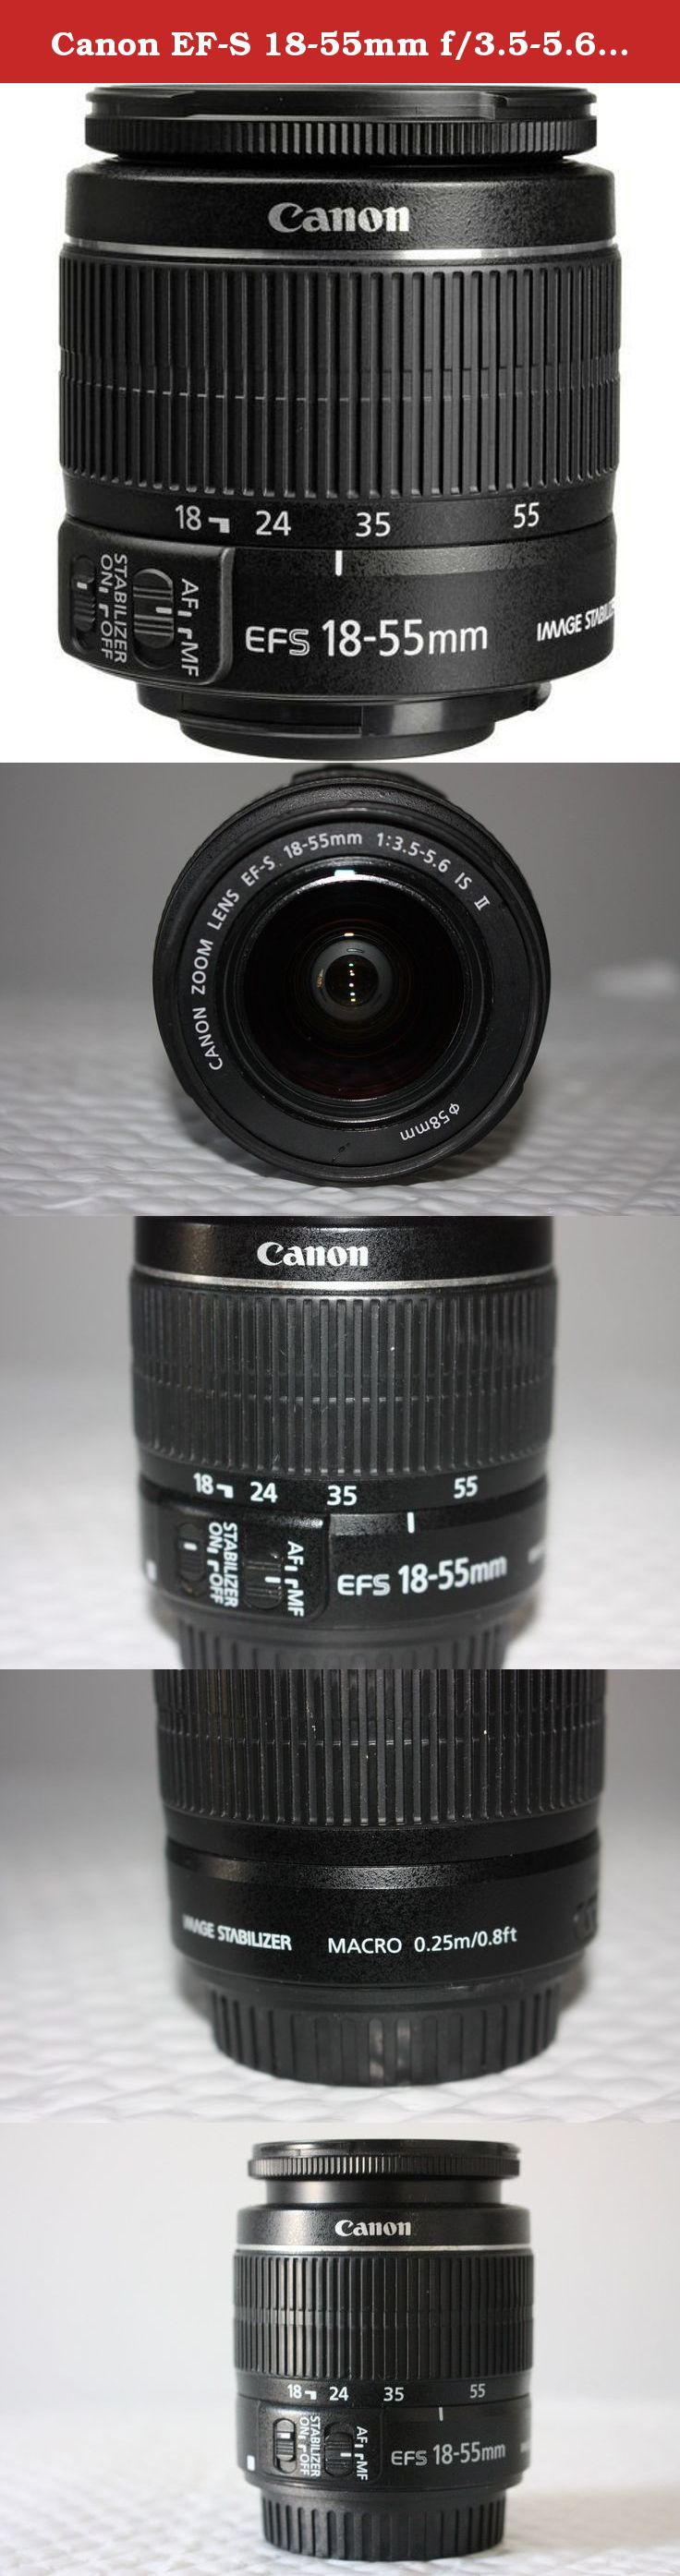 Canon EF-S 18-55mm f/3.5-5.6 IS II Standard Wide Angle Zoom Lens for Canon SLR Cameras. This Canon EF-S 18-55mm f/3.5-5.6 IS II Standard Wide Angle Zoom Lens for Canon SLR Cameras is perfectly fit Canon EOS Rebel XS, XSi, XT, XTi, T1i, T2i, T3, T3i, T4i, T5, T5i, 10D, 20D, 30D, 40D, 50D, 60D, 70D, 7D.